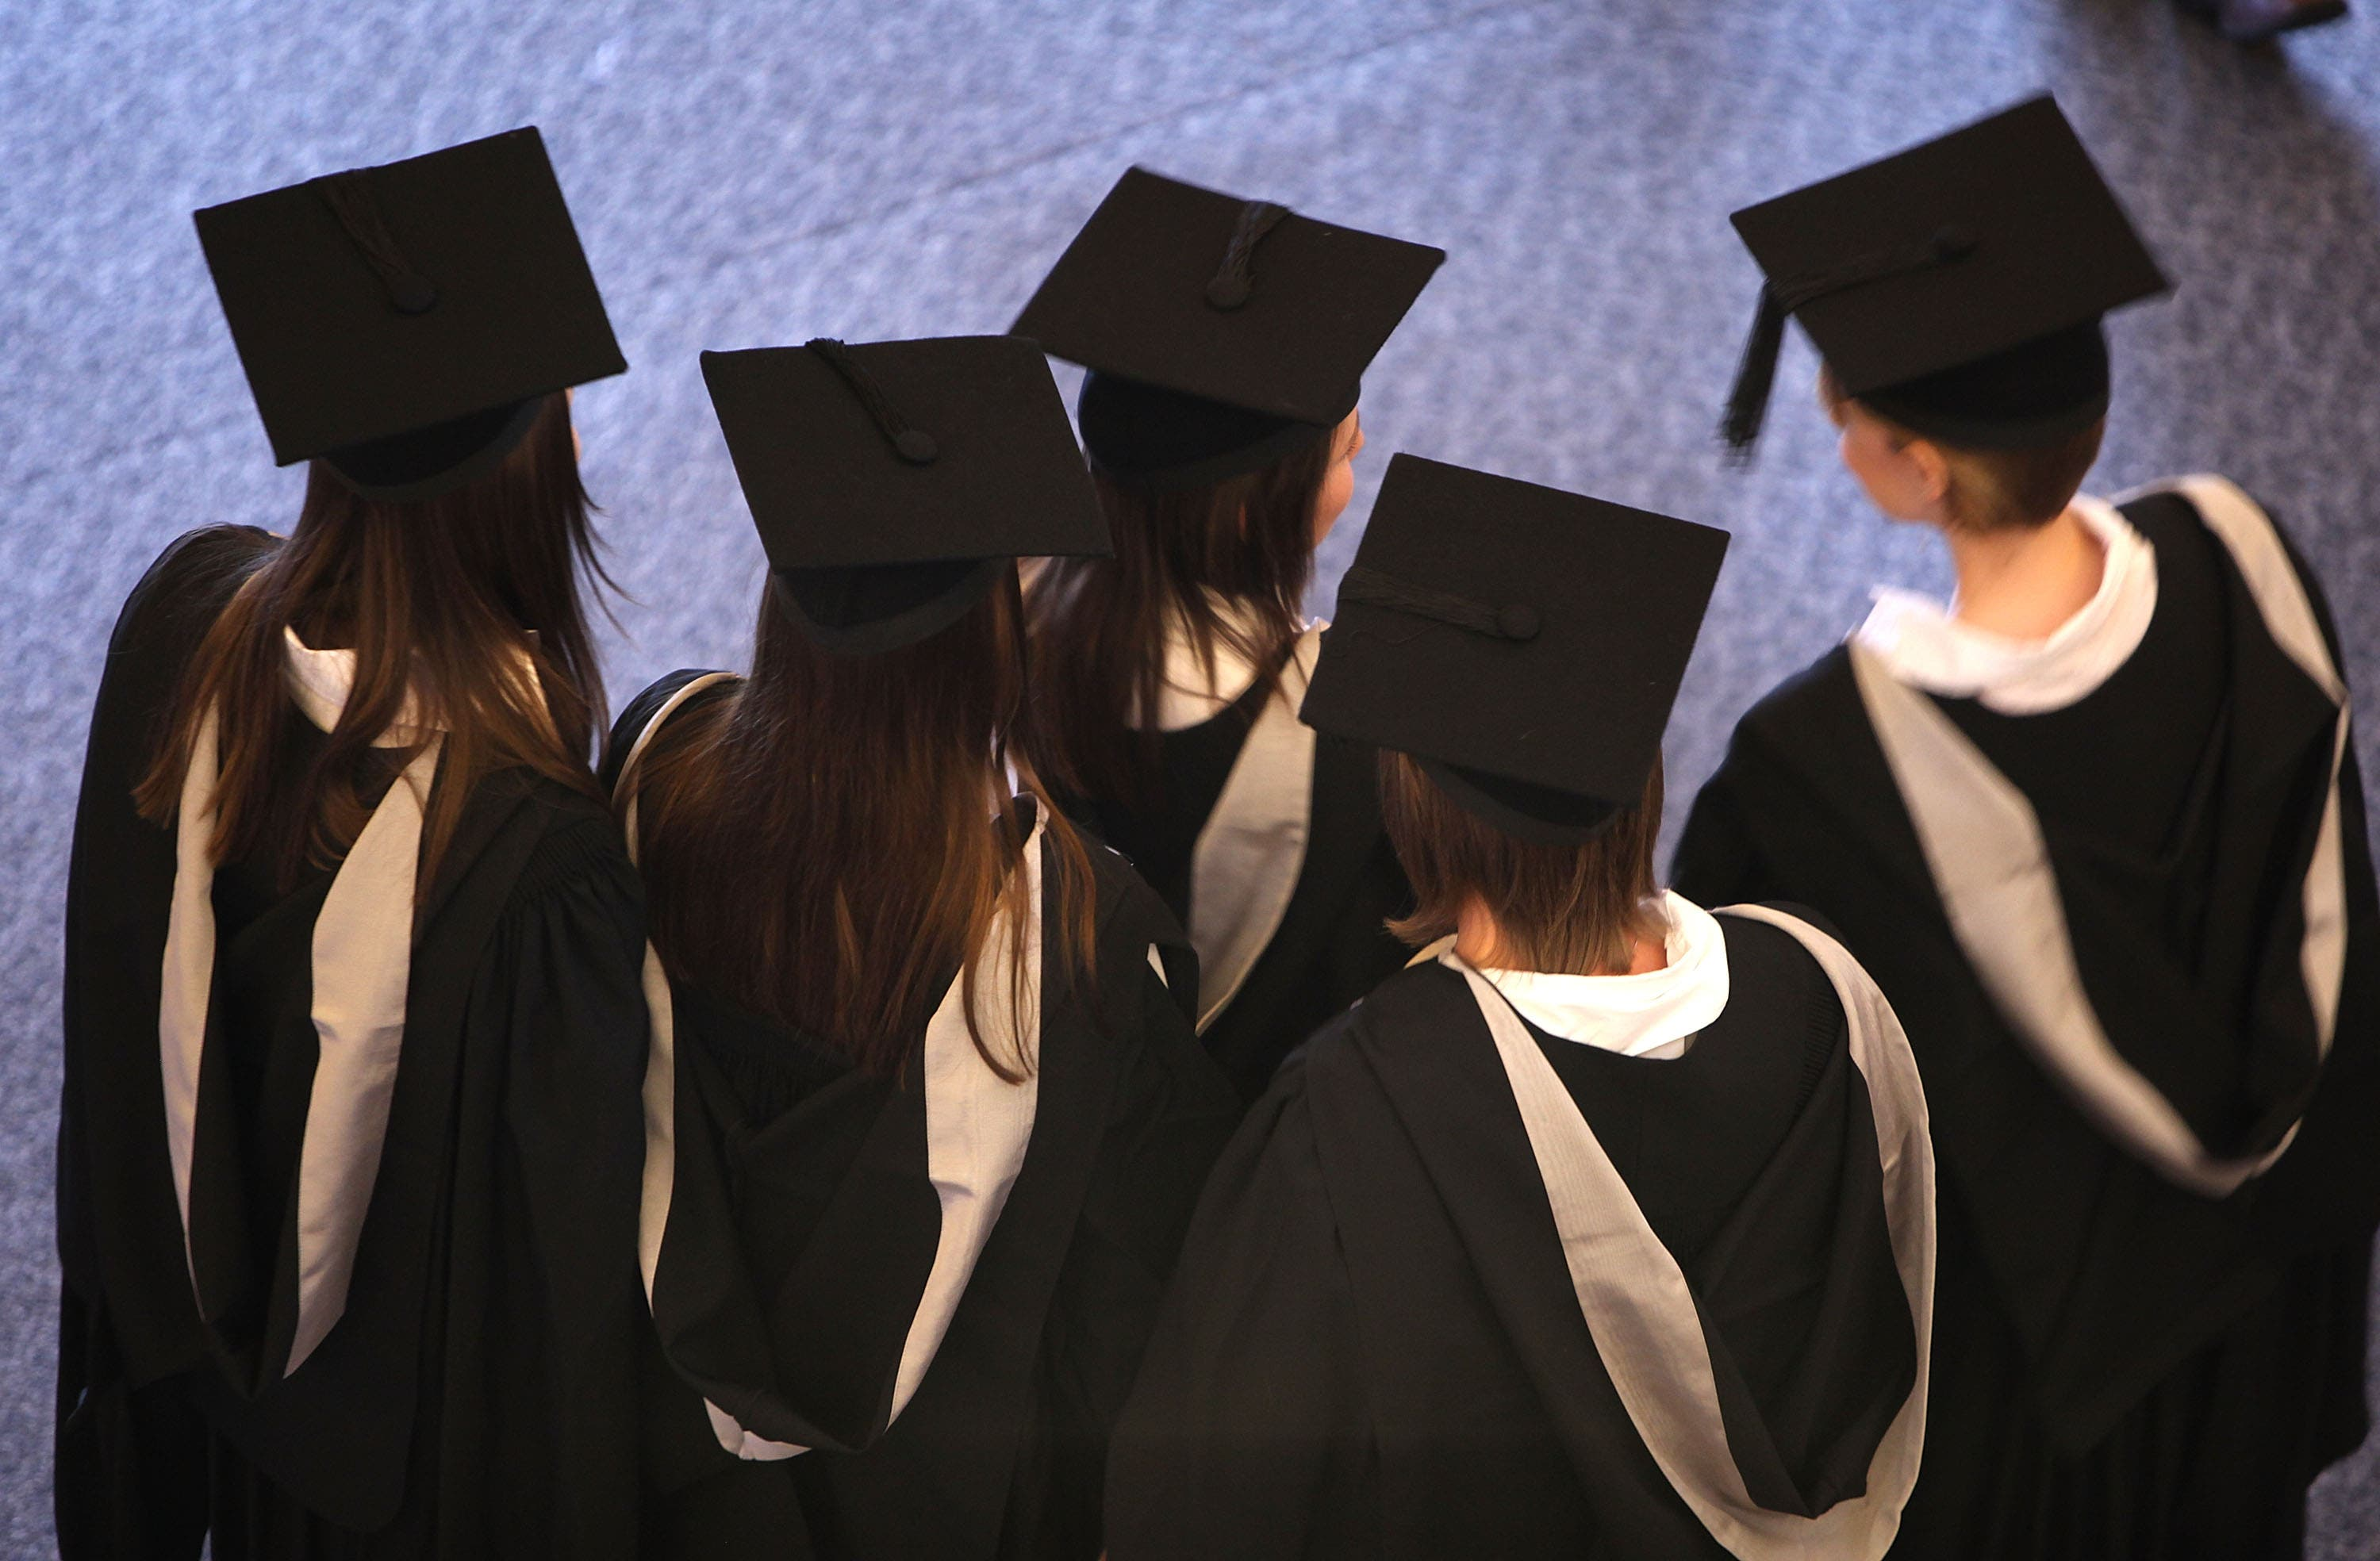 University degrees are a good start but not a free ticket to a high-flying successful career, necessarily